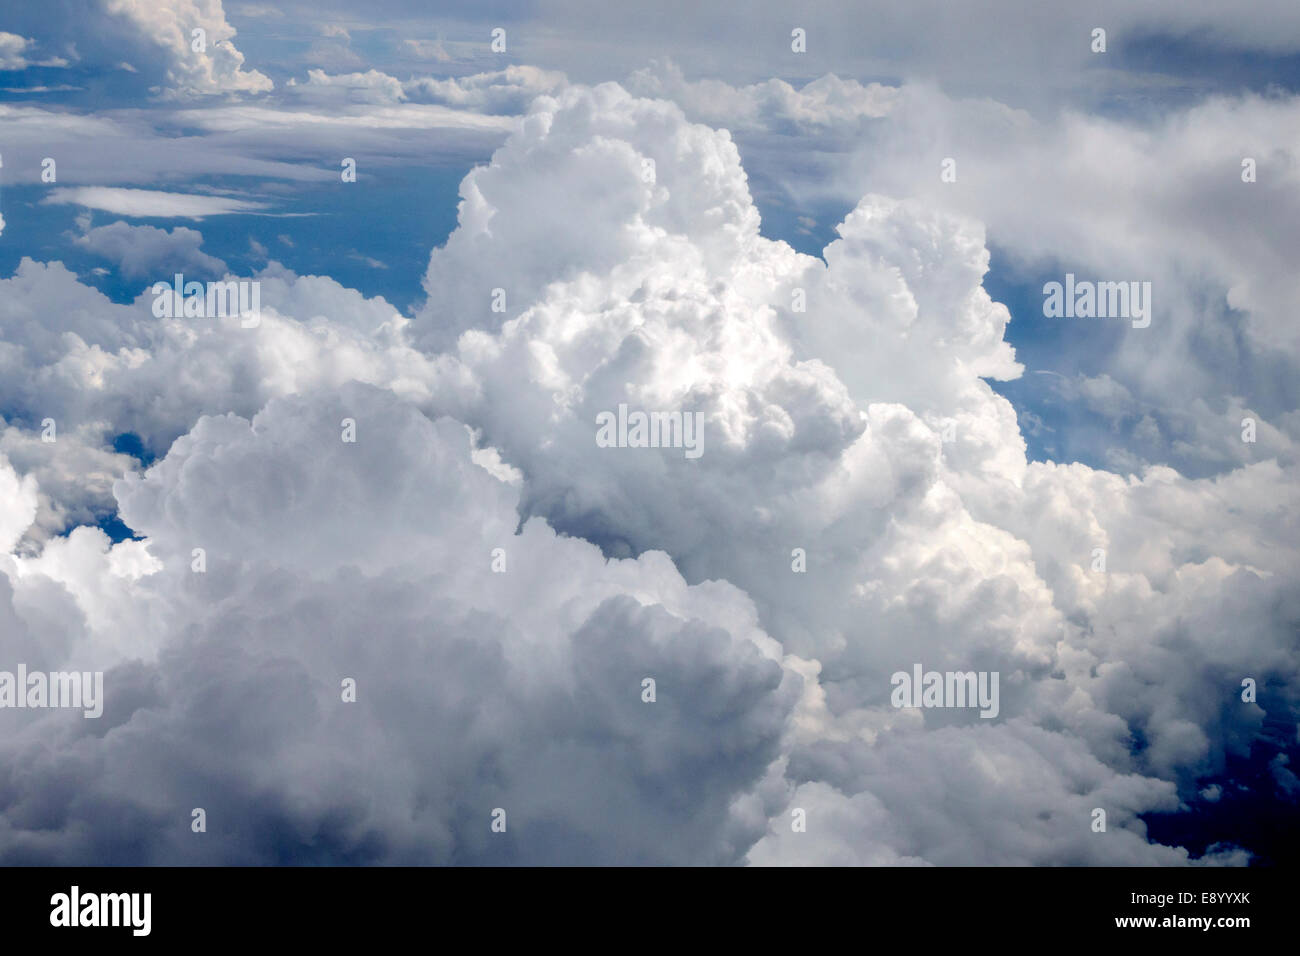 St. Louis Missouri Saint Lambert-St. Louis International Airport STL cloud cloudy sky aerial view airplane window - Stock Image